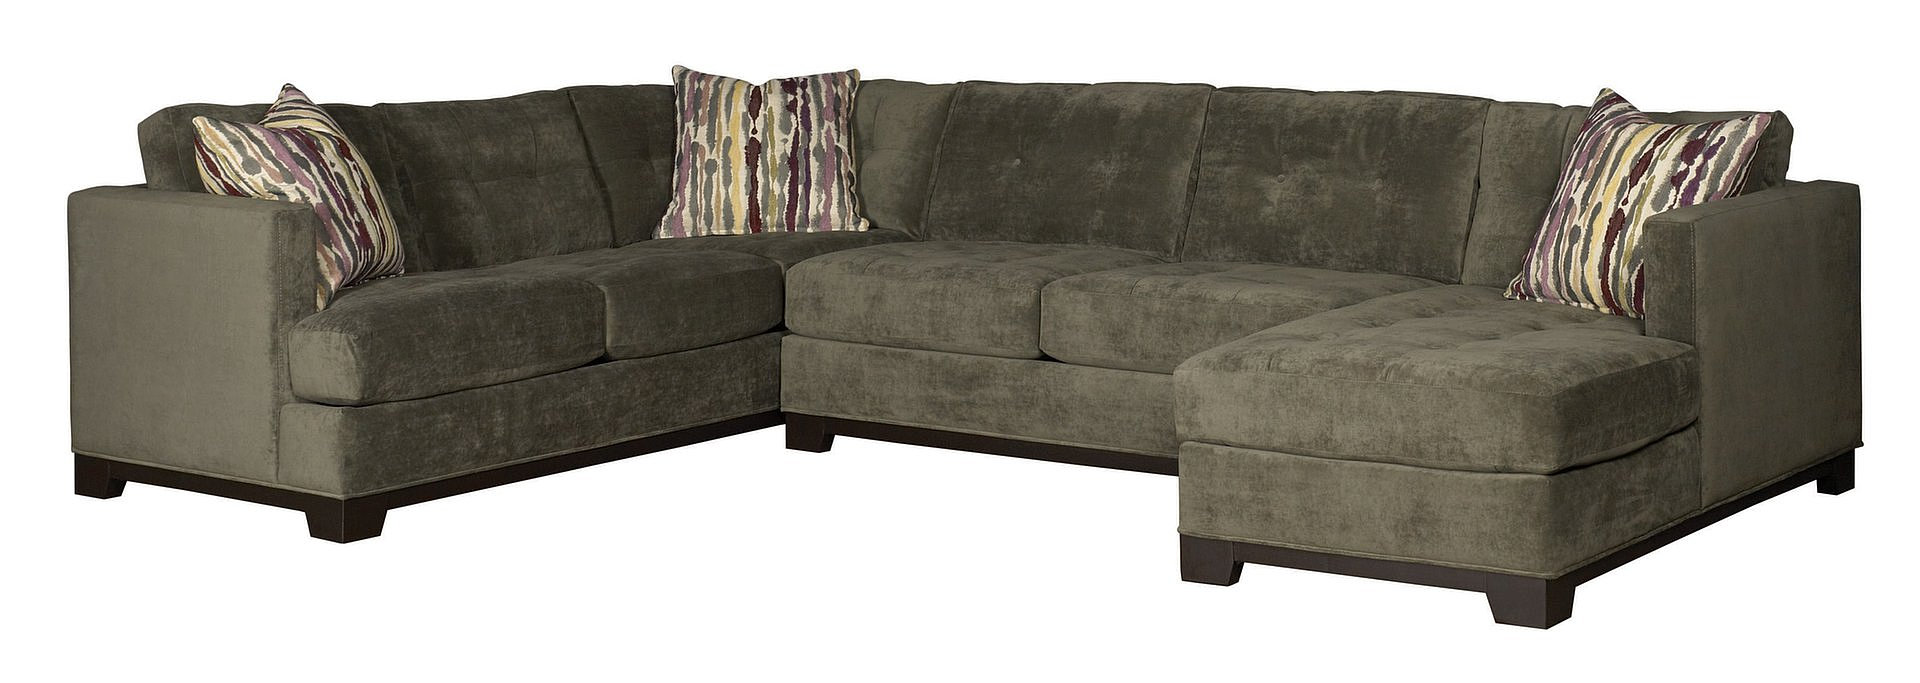 Domicile Furniture Landon Sectional